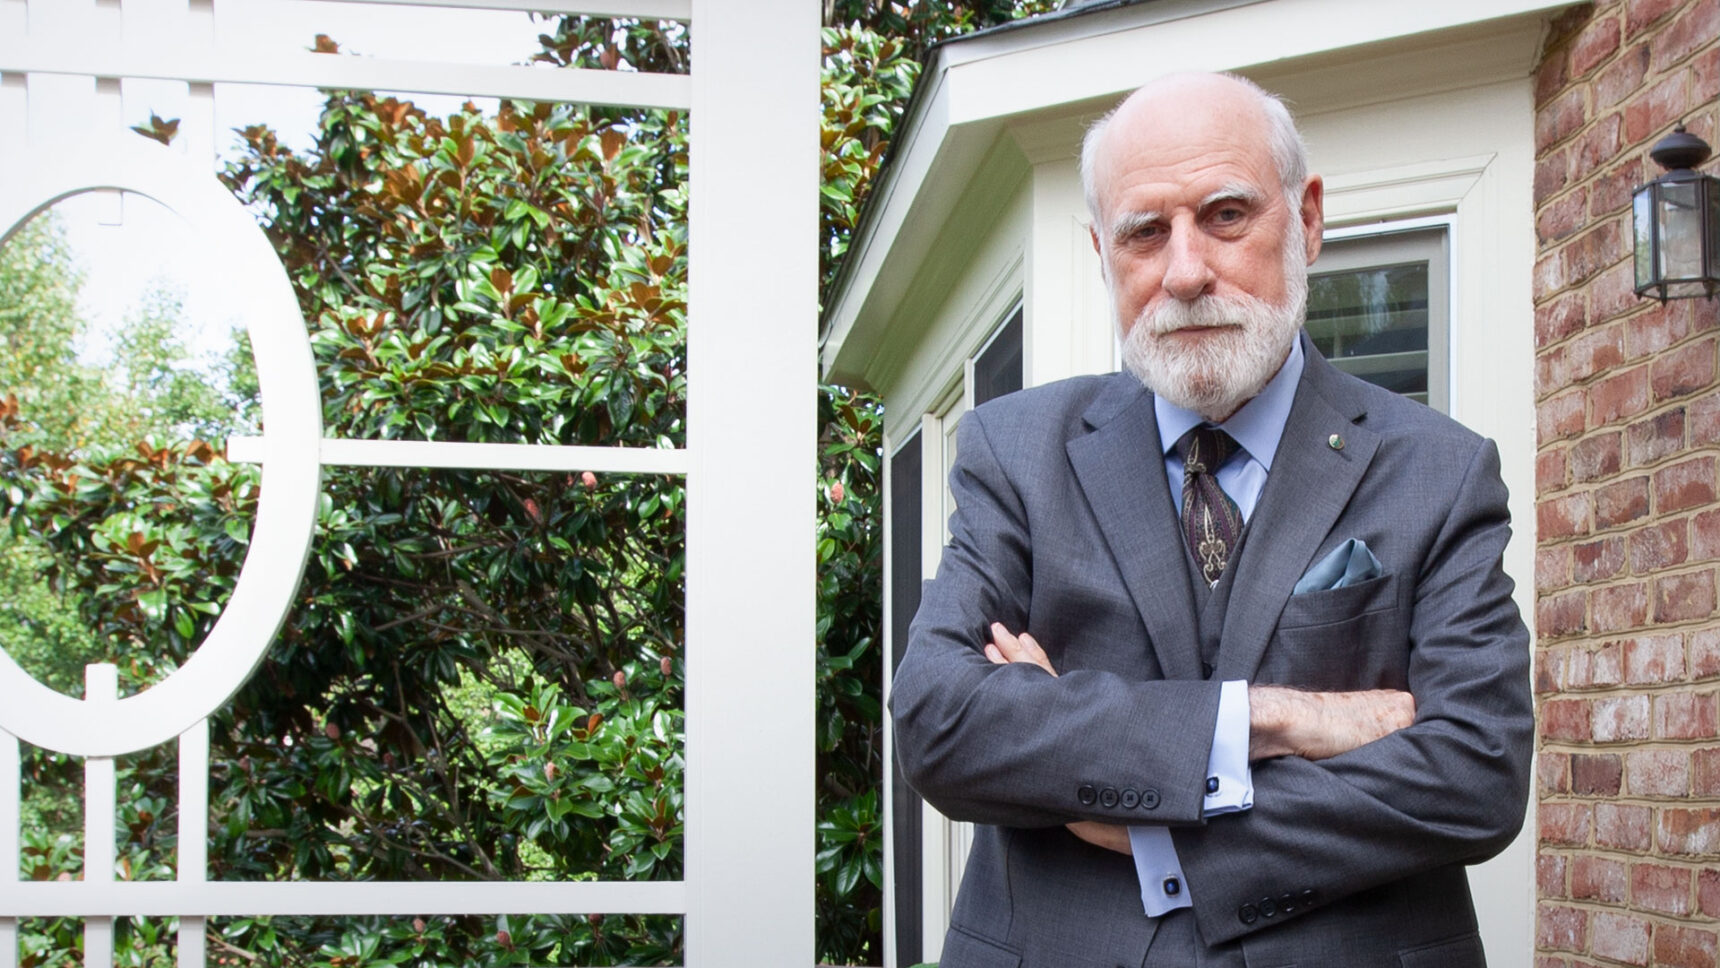 Vinton Cerf discusses the challenges of creating an interplanetary internet.